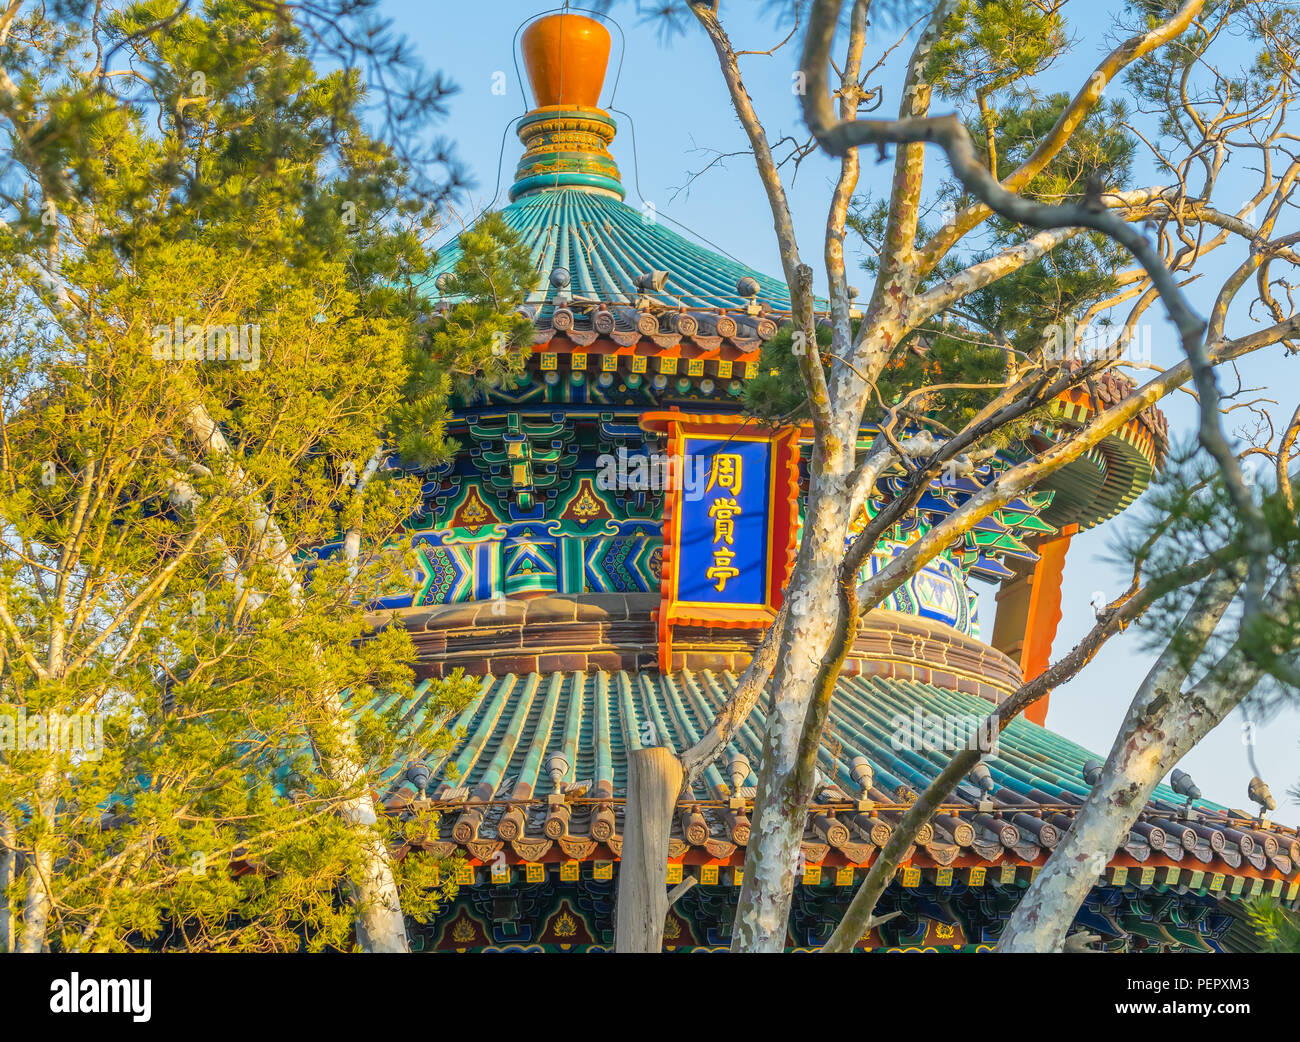 Zhoushang Pagoda Jingshan Park Beijing, China. Chinese characters say Zhoushang Pagoda.  Jingshang part of the Forbidden City, later a separate park,  - Stock Image